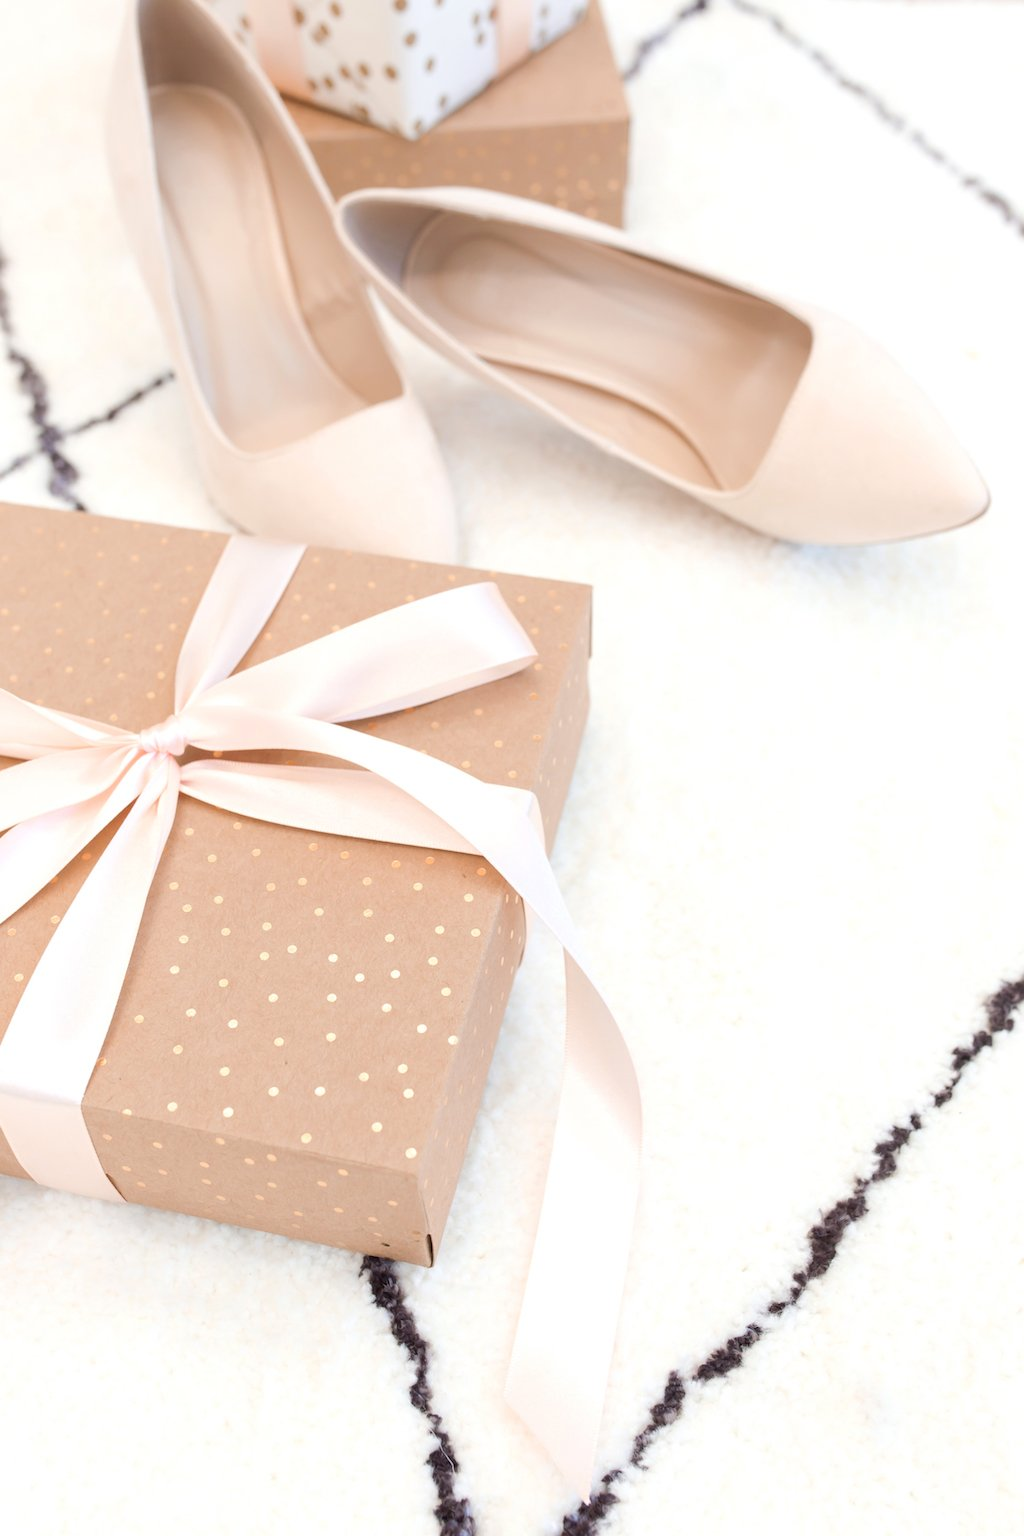 Pretty wrapped present on carpet next to blush high heels.